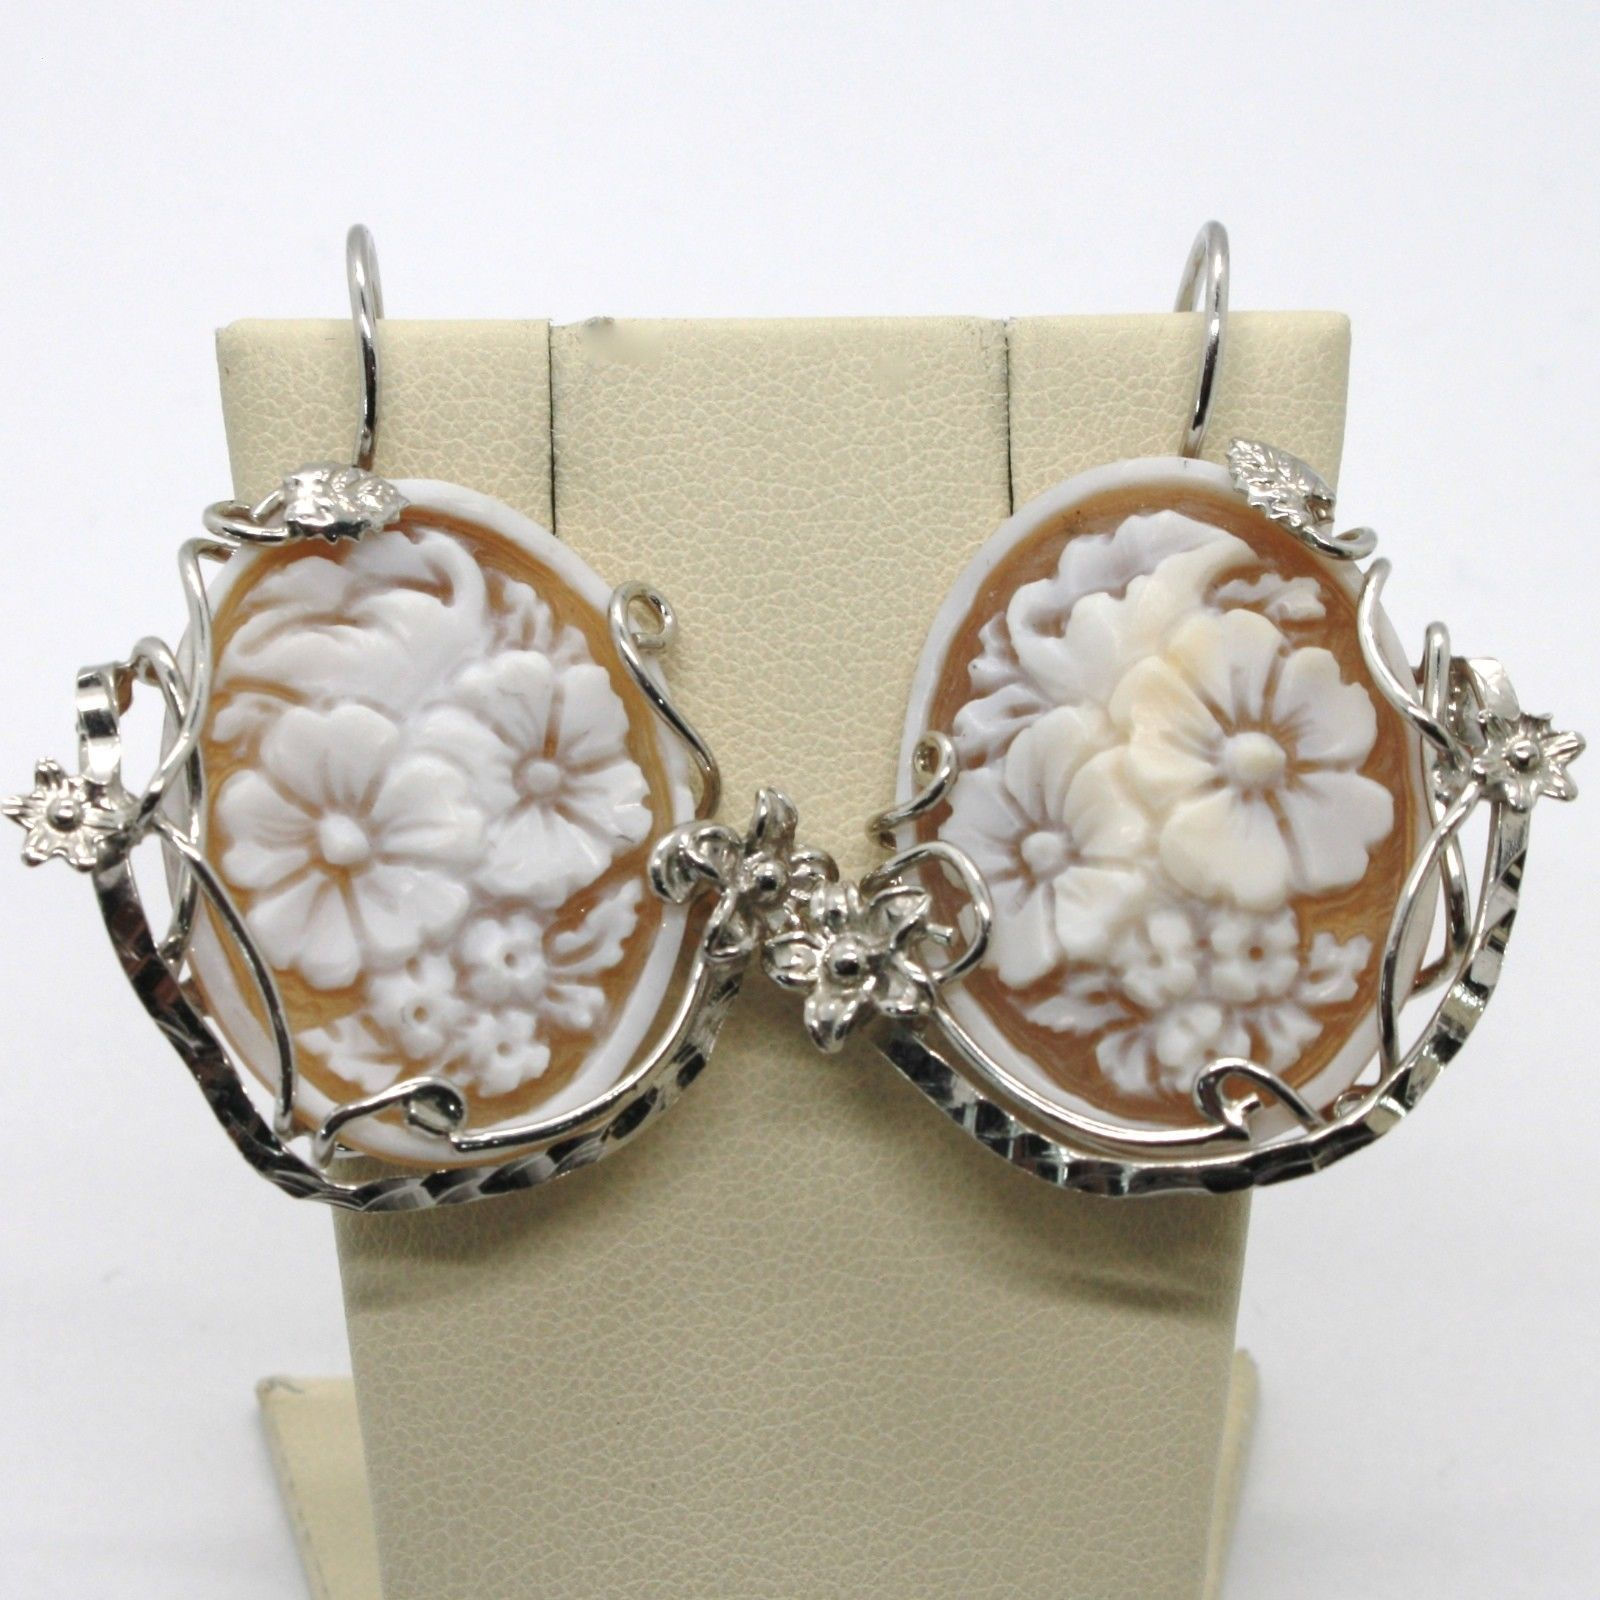 EARRINGS SILVER 925 WITH CAMEO CAMEO HANDMADE WITH FLOWERS MADE IN ITALY